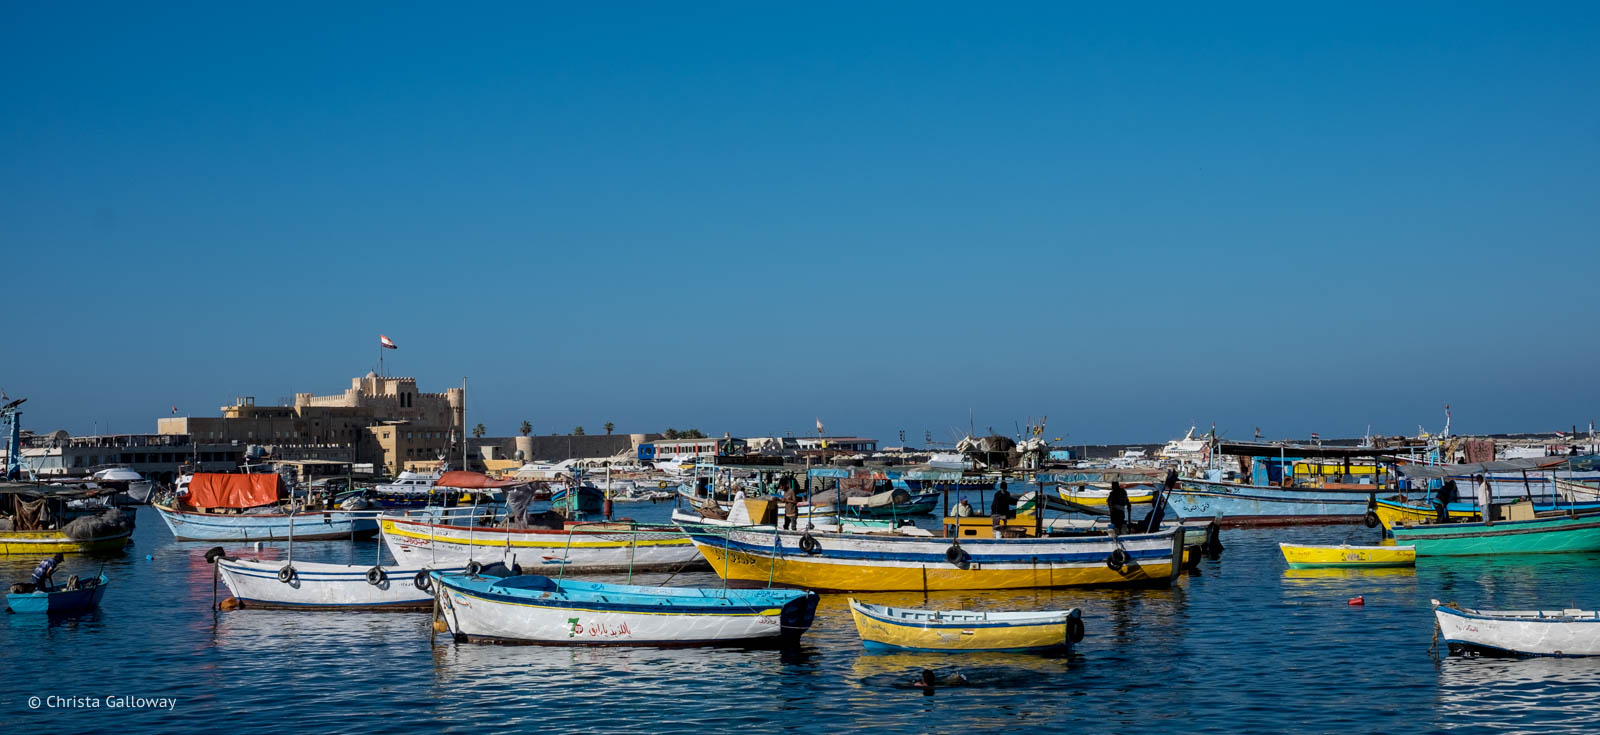 Boats on the Mediterranean coast near the Qaitbay Citadel.